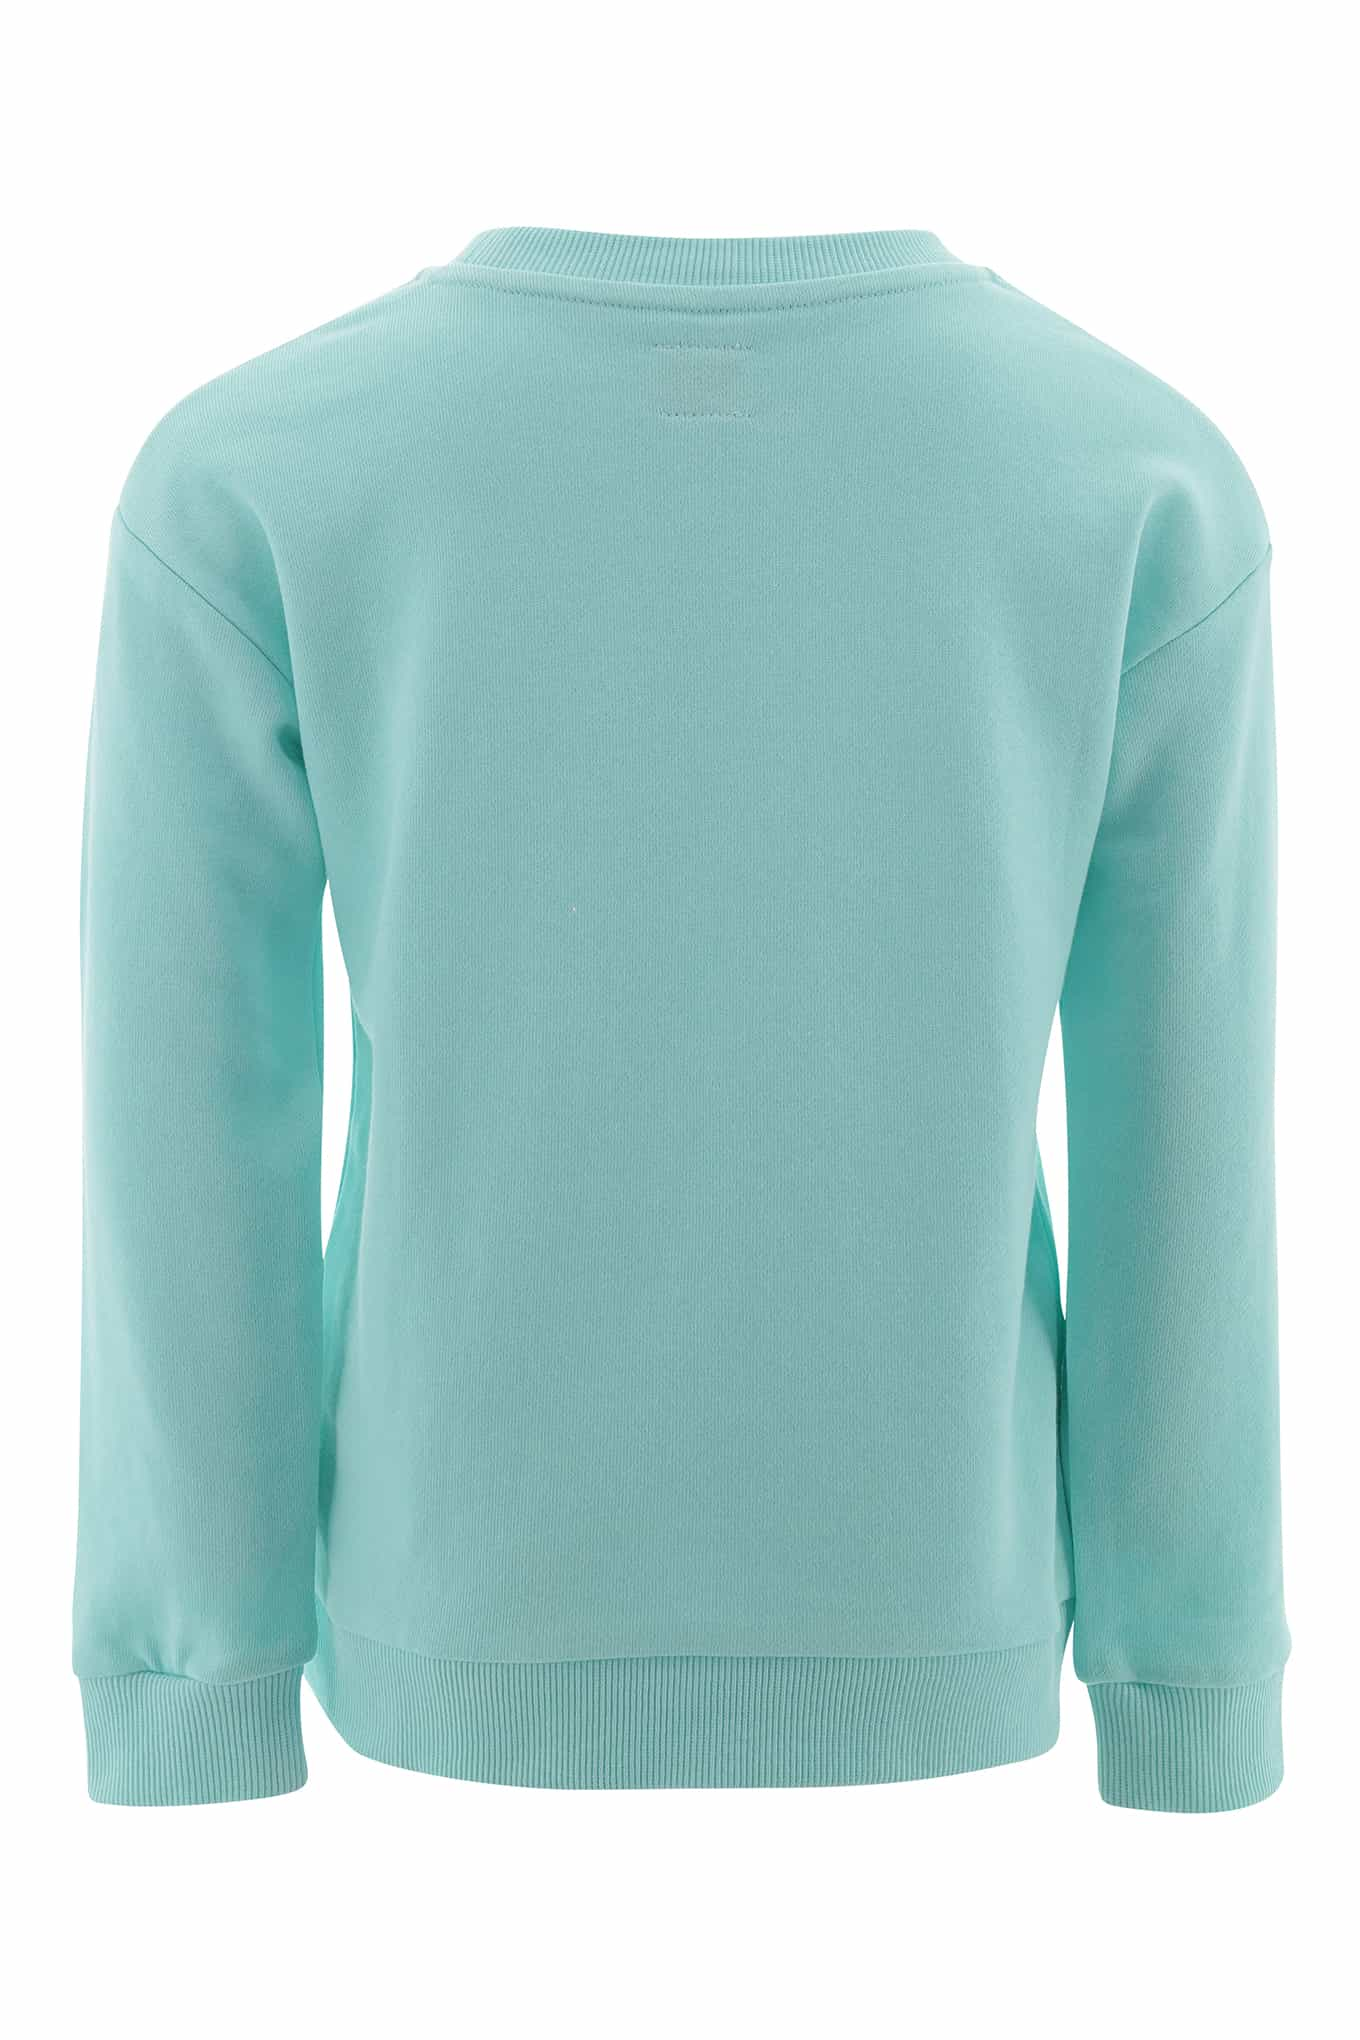 Sweatshirt Aqua Casual Girl